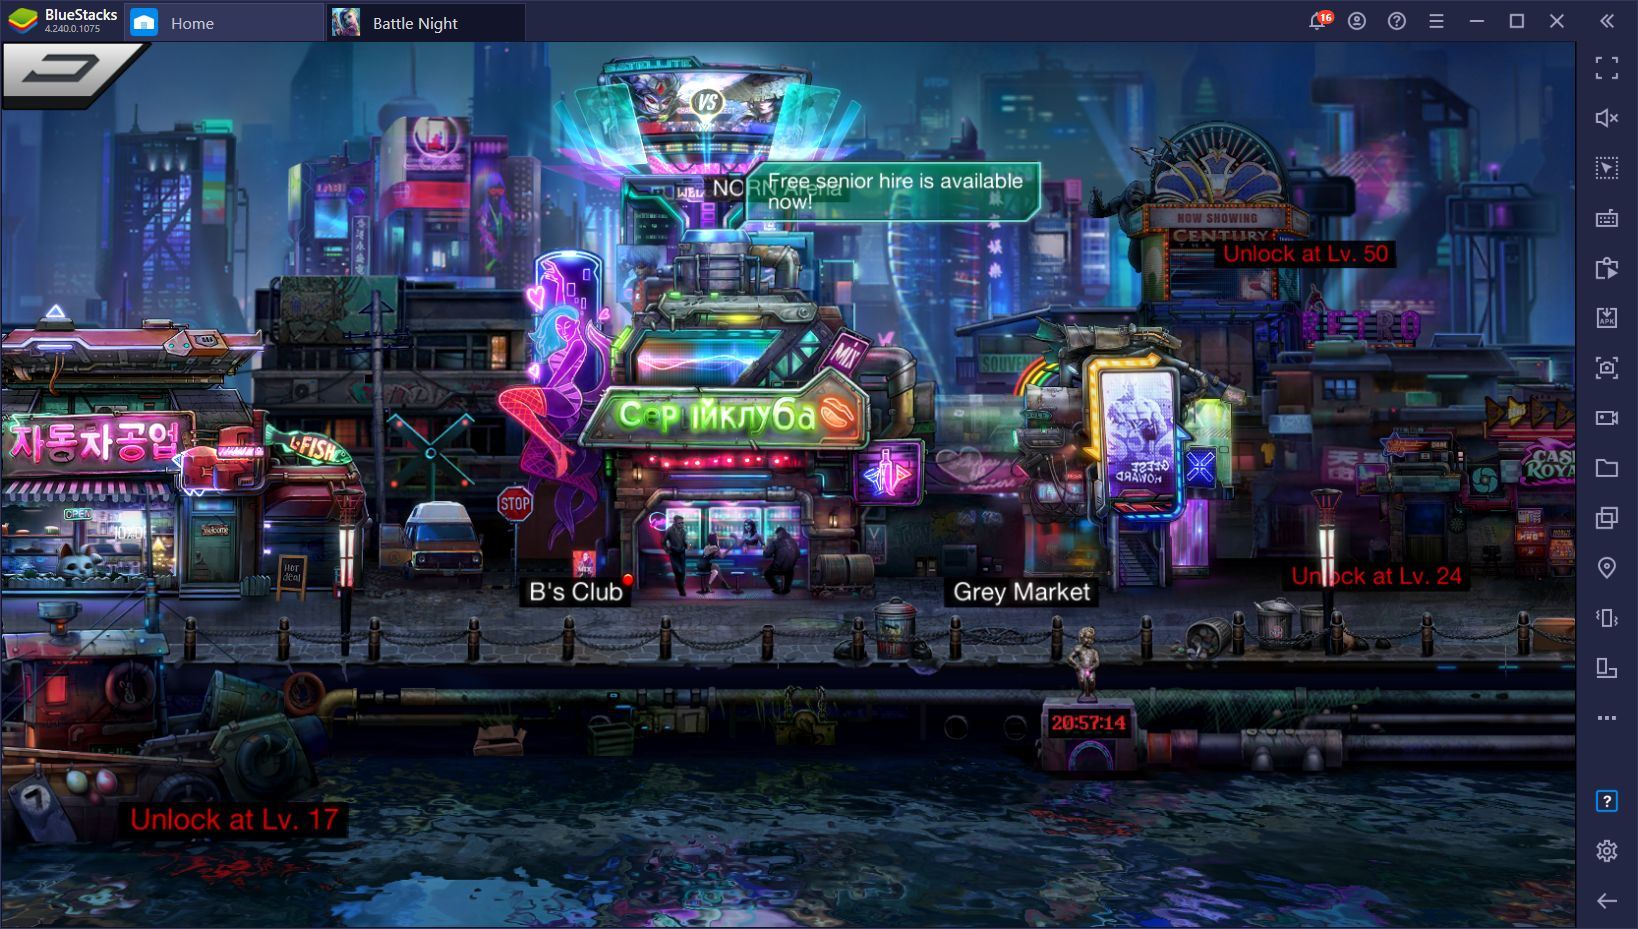 Battle Night: Cyber Squad – Using Our BlueStacks Tools to Easily Beat Your Enemies at Every Turn